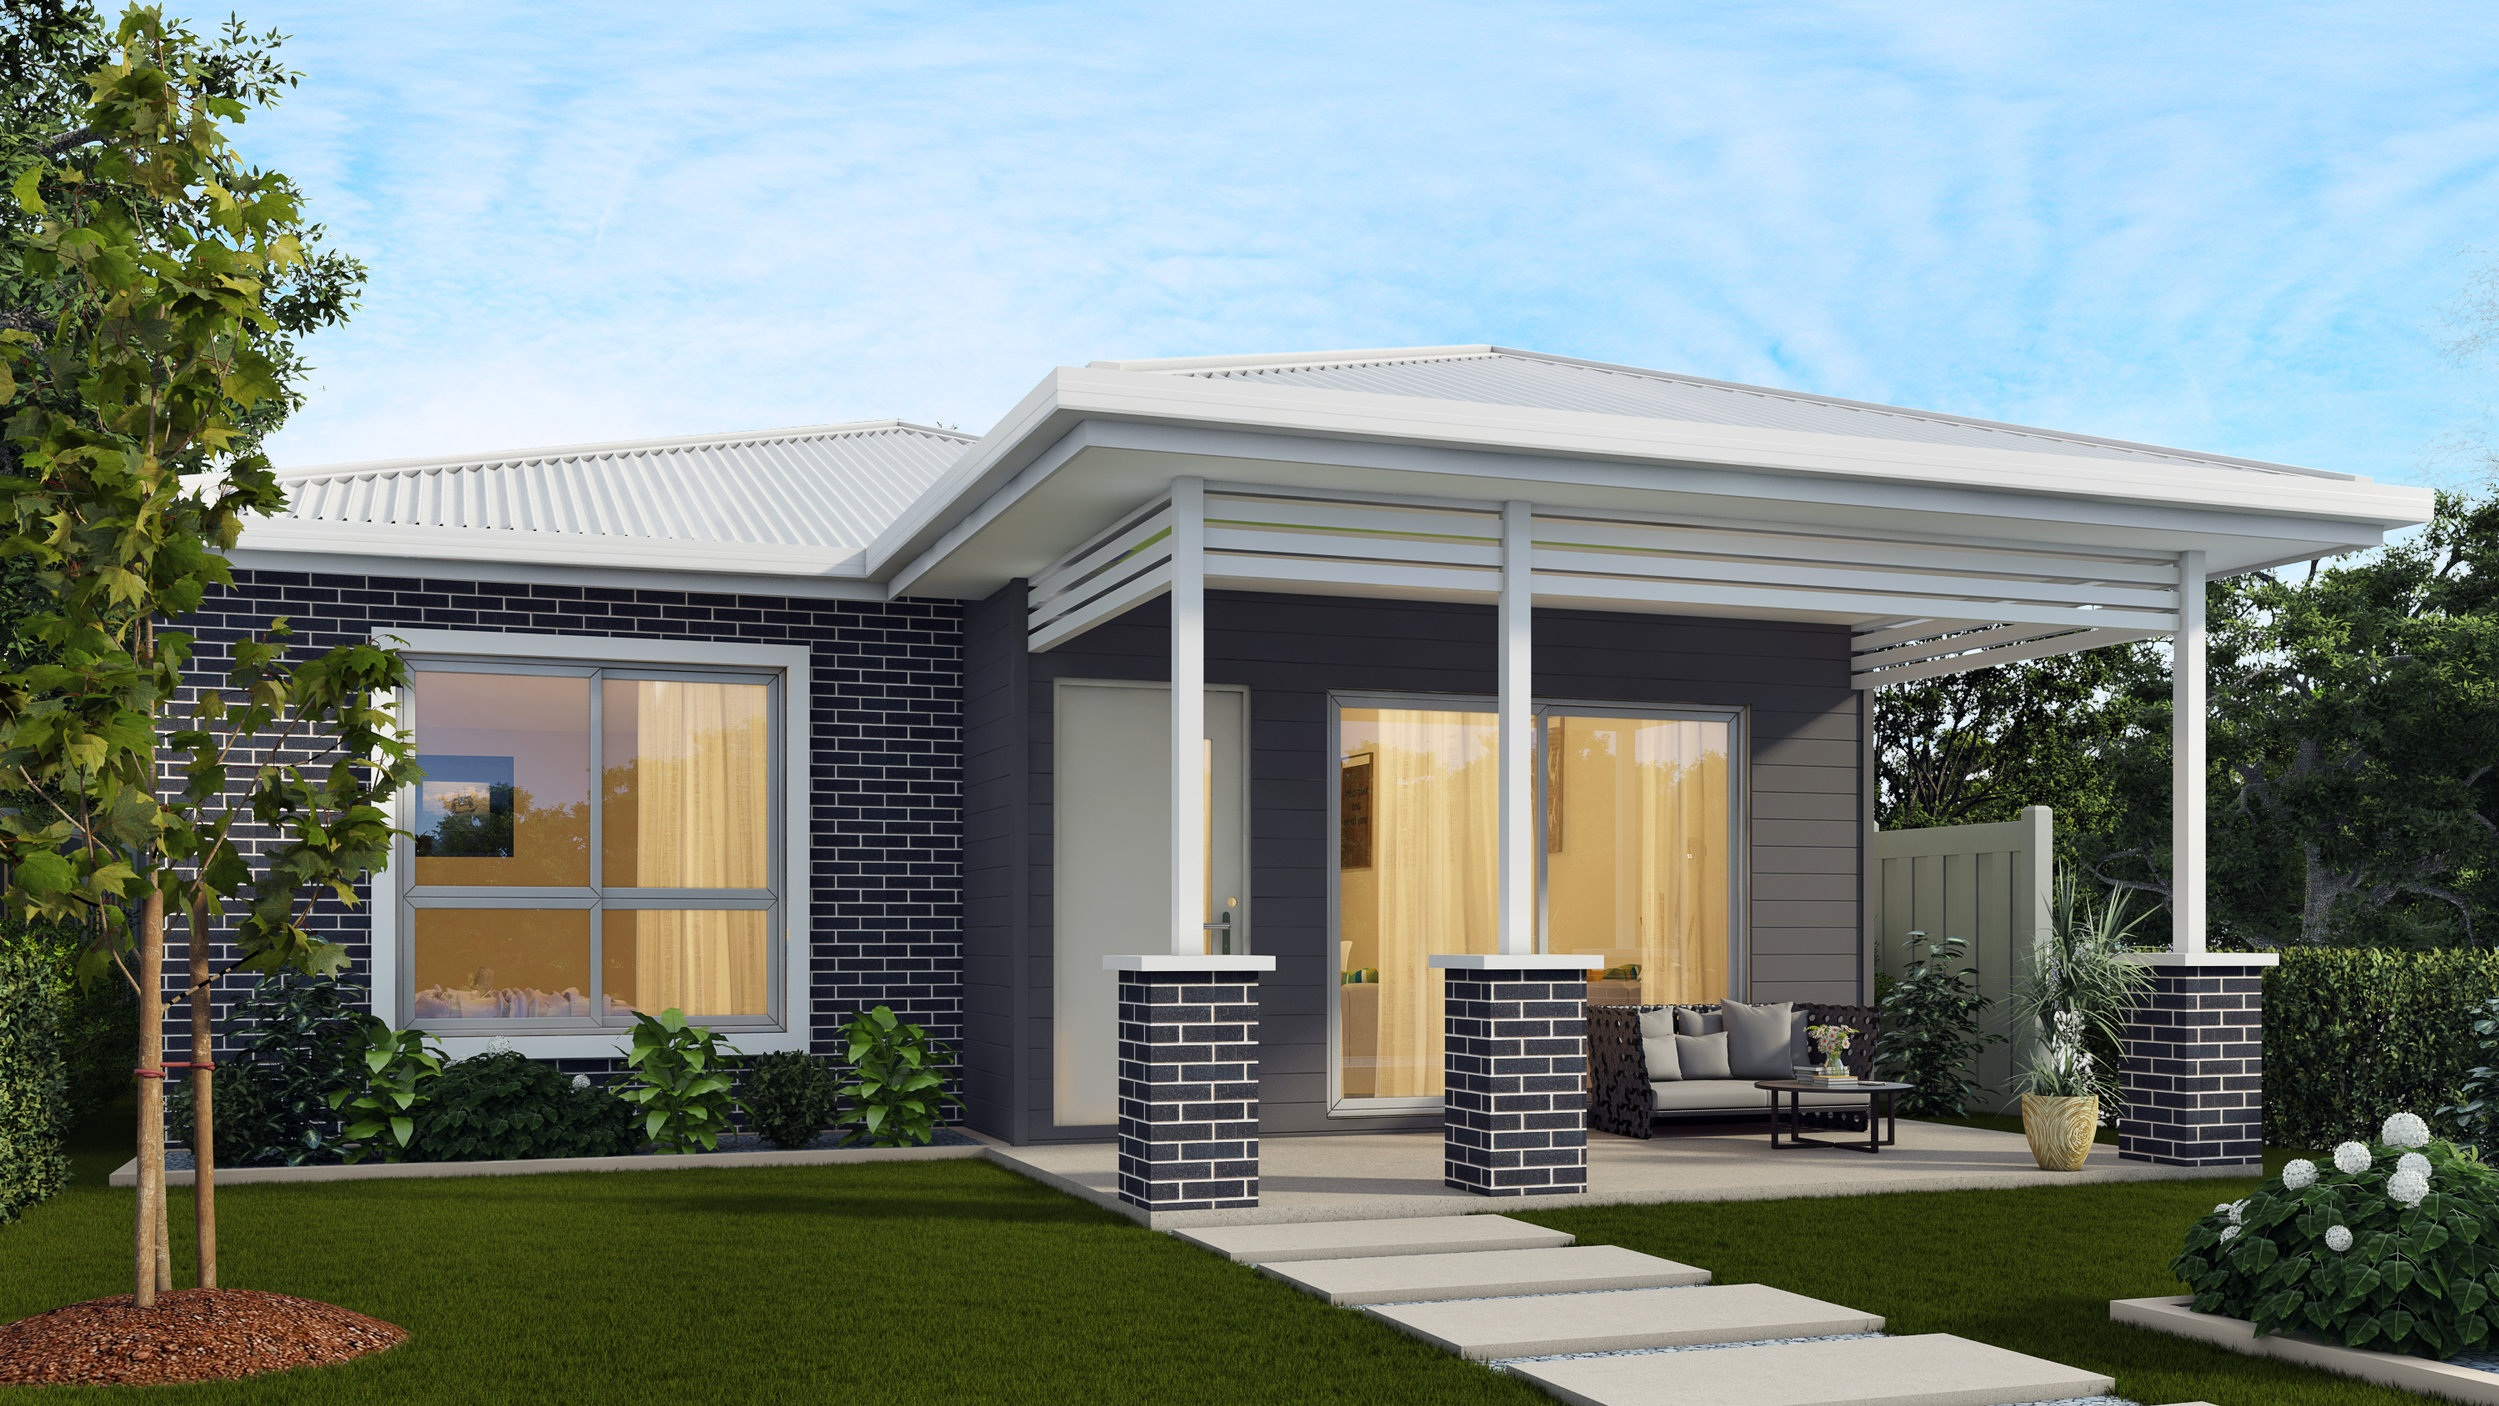 The Knox - 3 Bed | 2 Bath | 2 Car Garage10m Laneway Lots